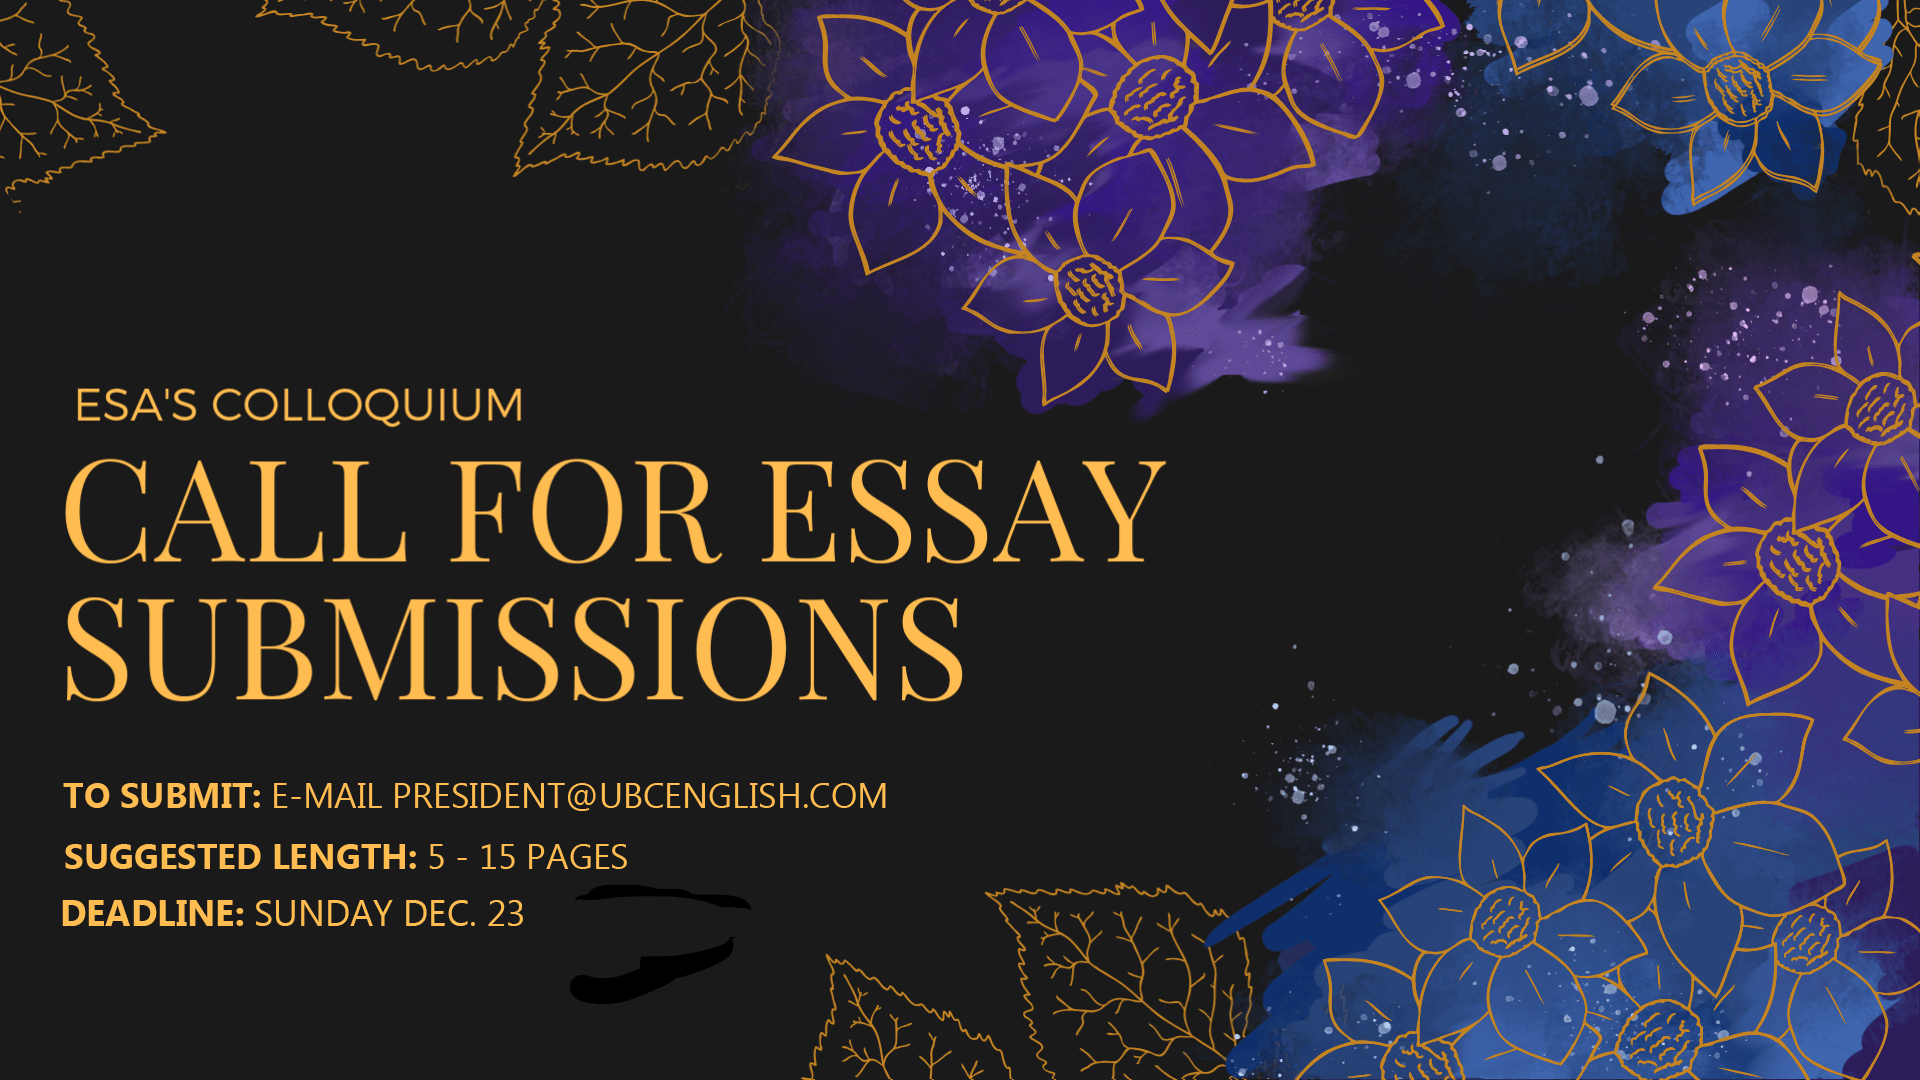 021 Essay Submissions Colloquium Final V3fit19202c1080 Impressive Buzzfeed Personal Press New York Times Full